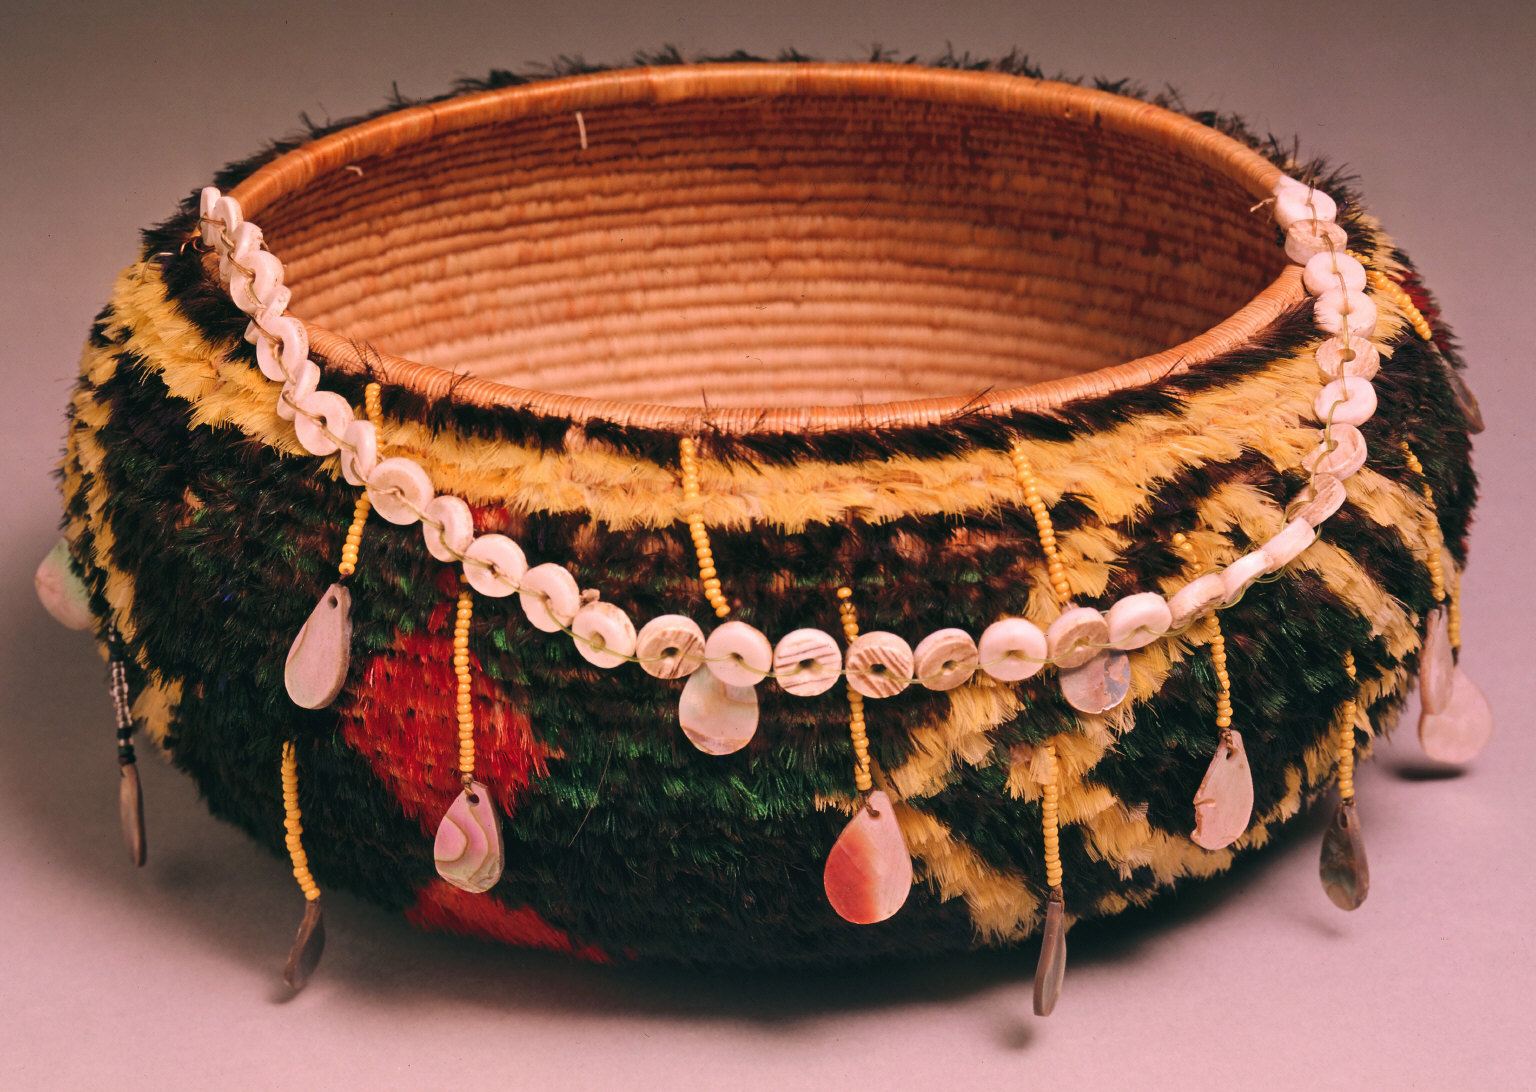 Feather basket